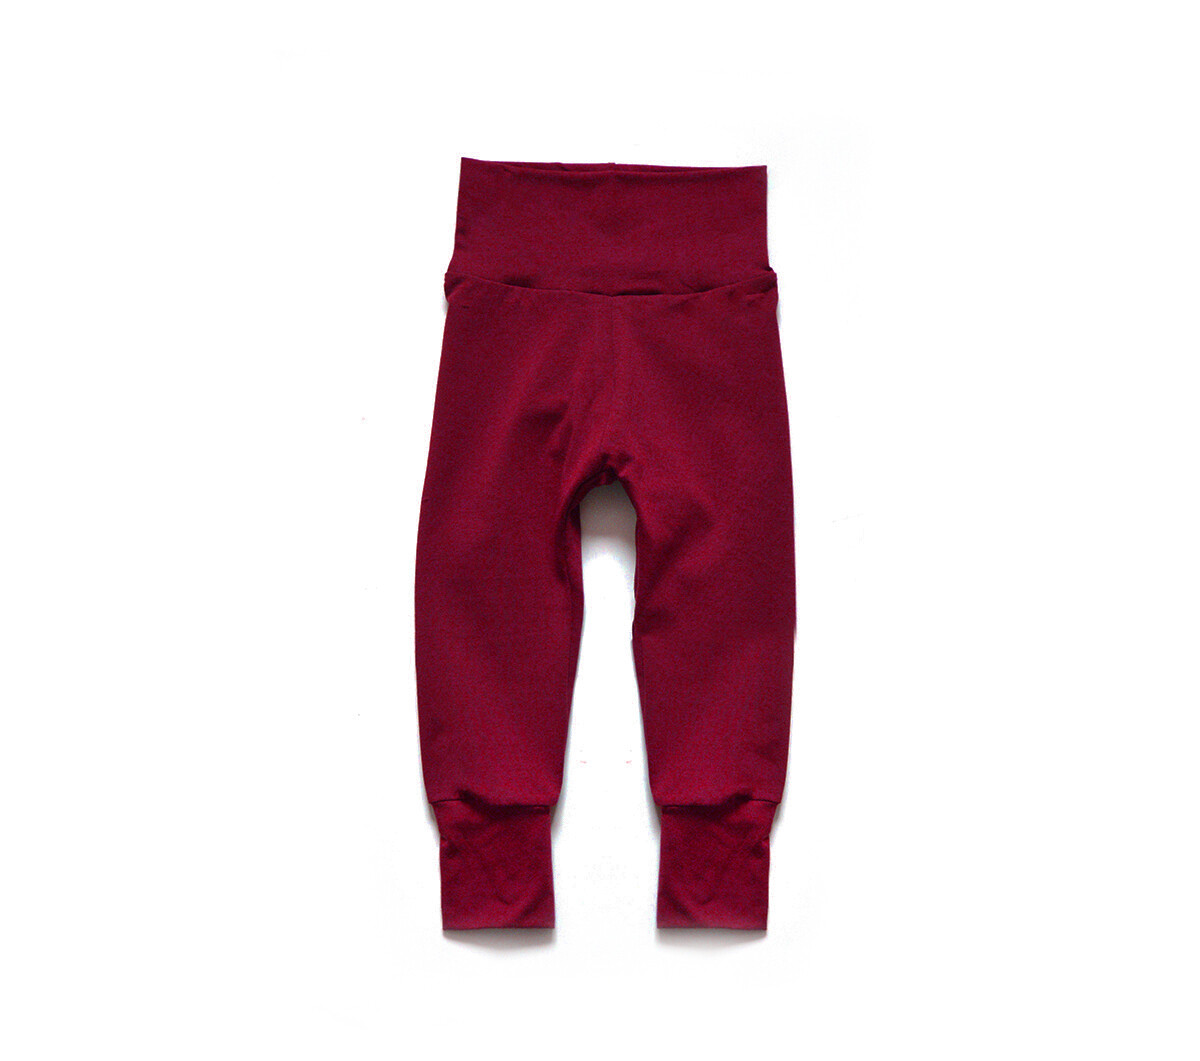 Little Sprout Pants™ in Brick | Grow With Me Leggings - Bamboo